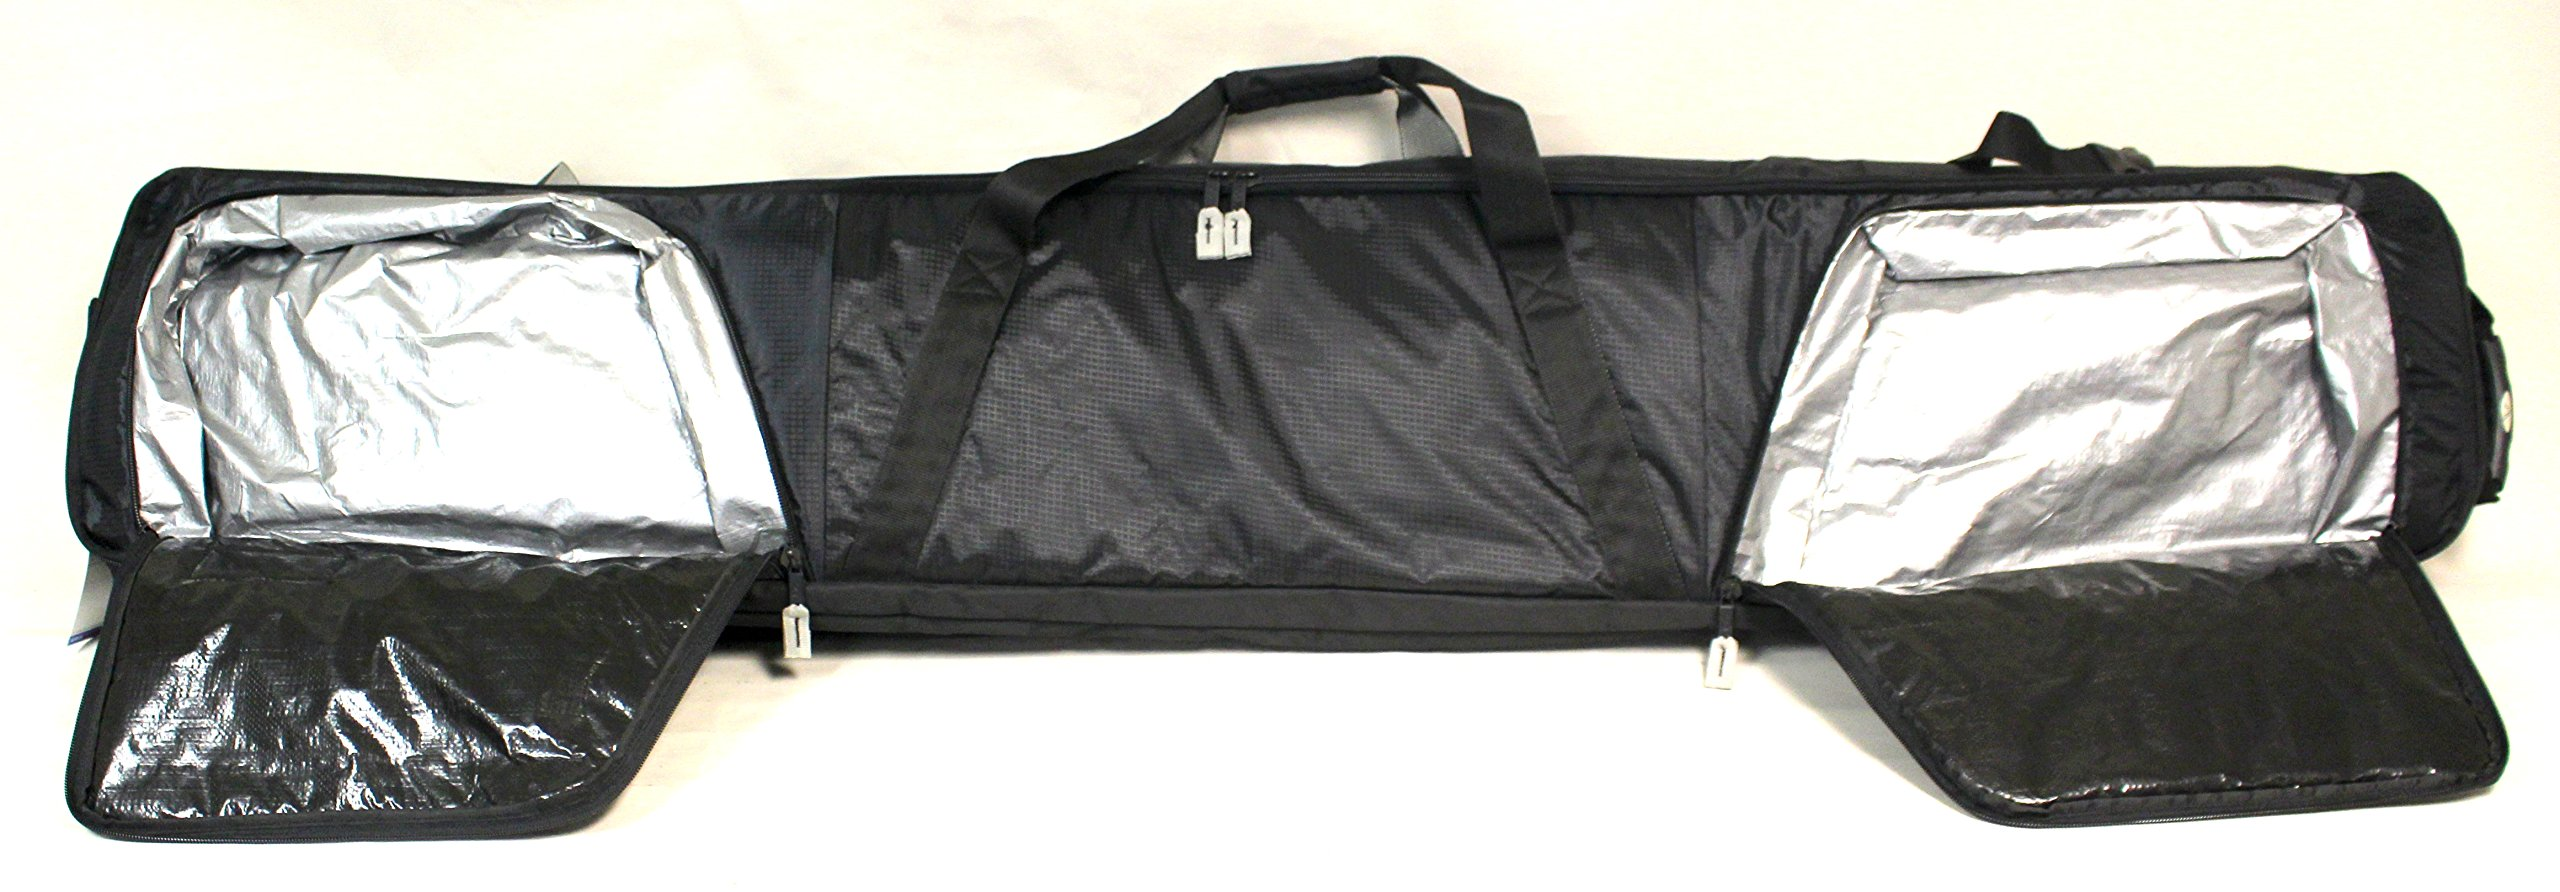 Double Ski Bag w/Wheels - Deluxe by Select Sportbags (Image #2)